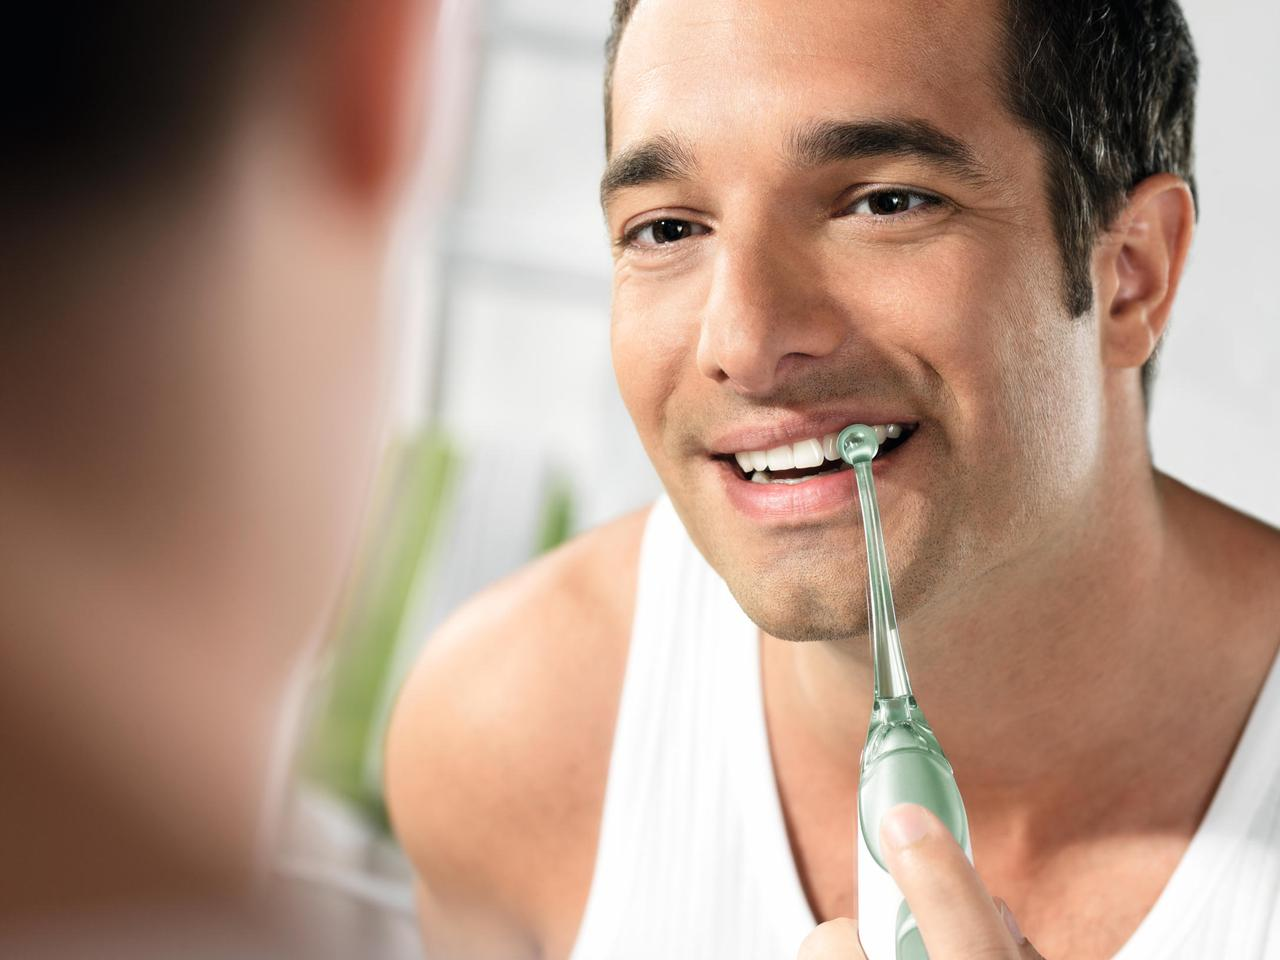 Philips has introduced a new handheld dental care product that dislodges interdental plaque and bacteria with rapid bursts of air and water.